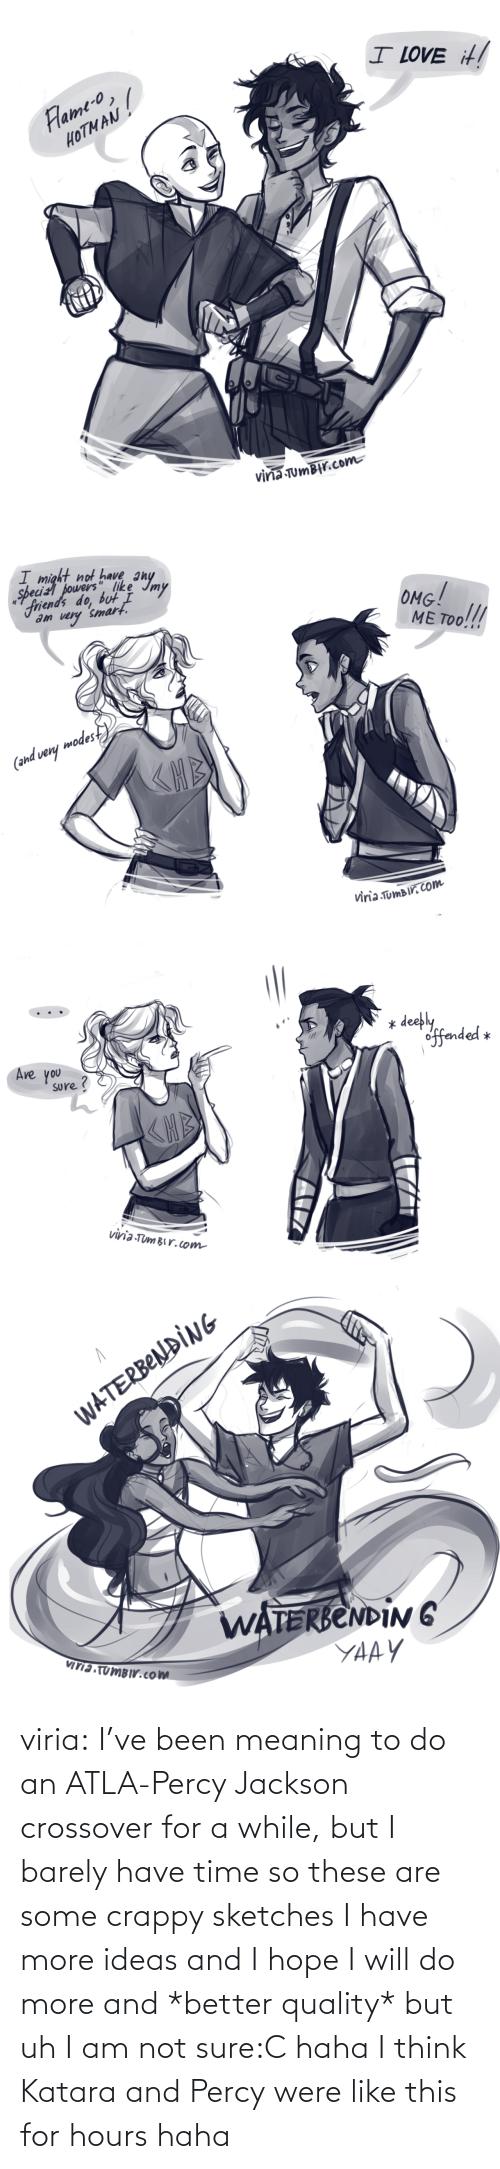 Am Not: viria:  I've been meaning to do an ATLA-Percy Jackson crossover for a while, but I barely have time so these are some crappy sketches I have more ideas and I hope I will do more and *better quality* but uh I am not sure:C haha I think Katara and Percy were like this for hours haha